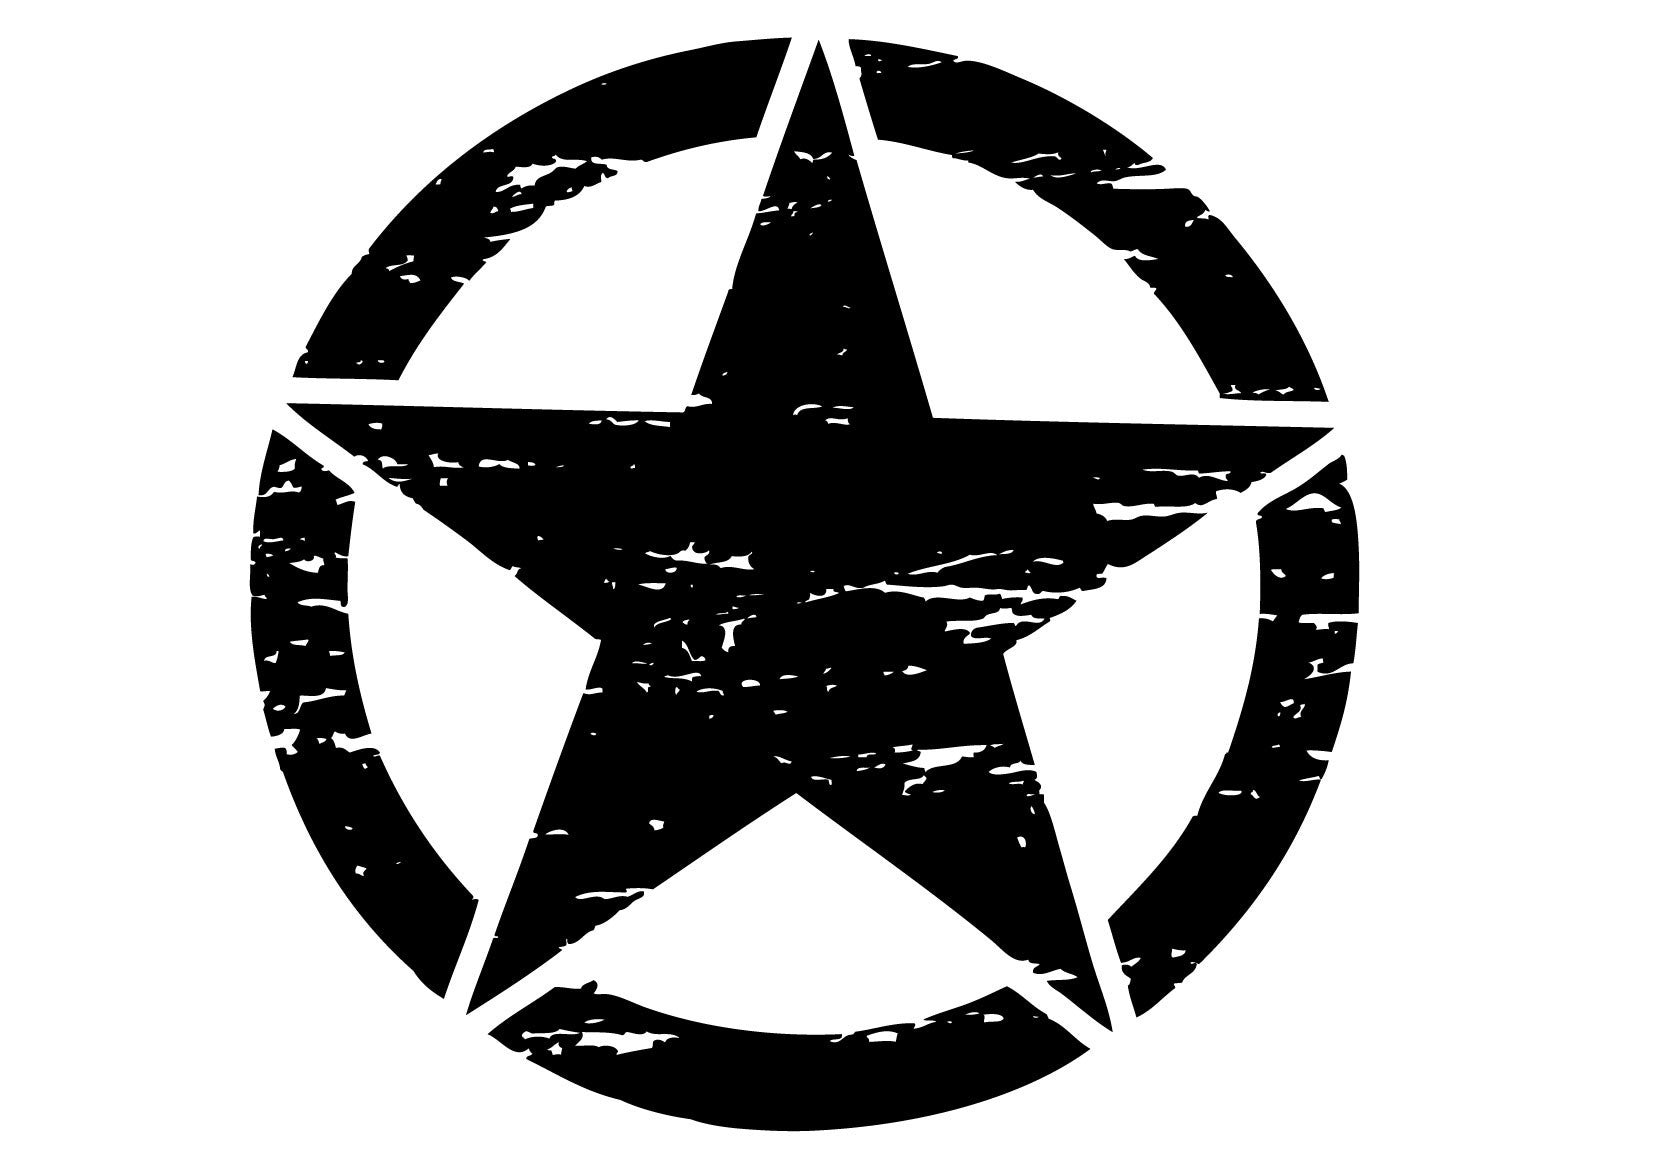 Wgallerydisplay furthermore 231280937288 together with Jeep Renegade Blackout Oscar Mike Distressed Star Vinyl Hood Decal 2015 2016 322109936174 additionally 3 as well 13 Reflective Oscar Mike Freedom Distressed Star Hood Decal. on oscar mike star decal